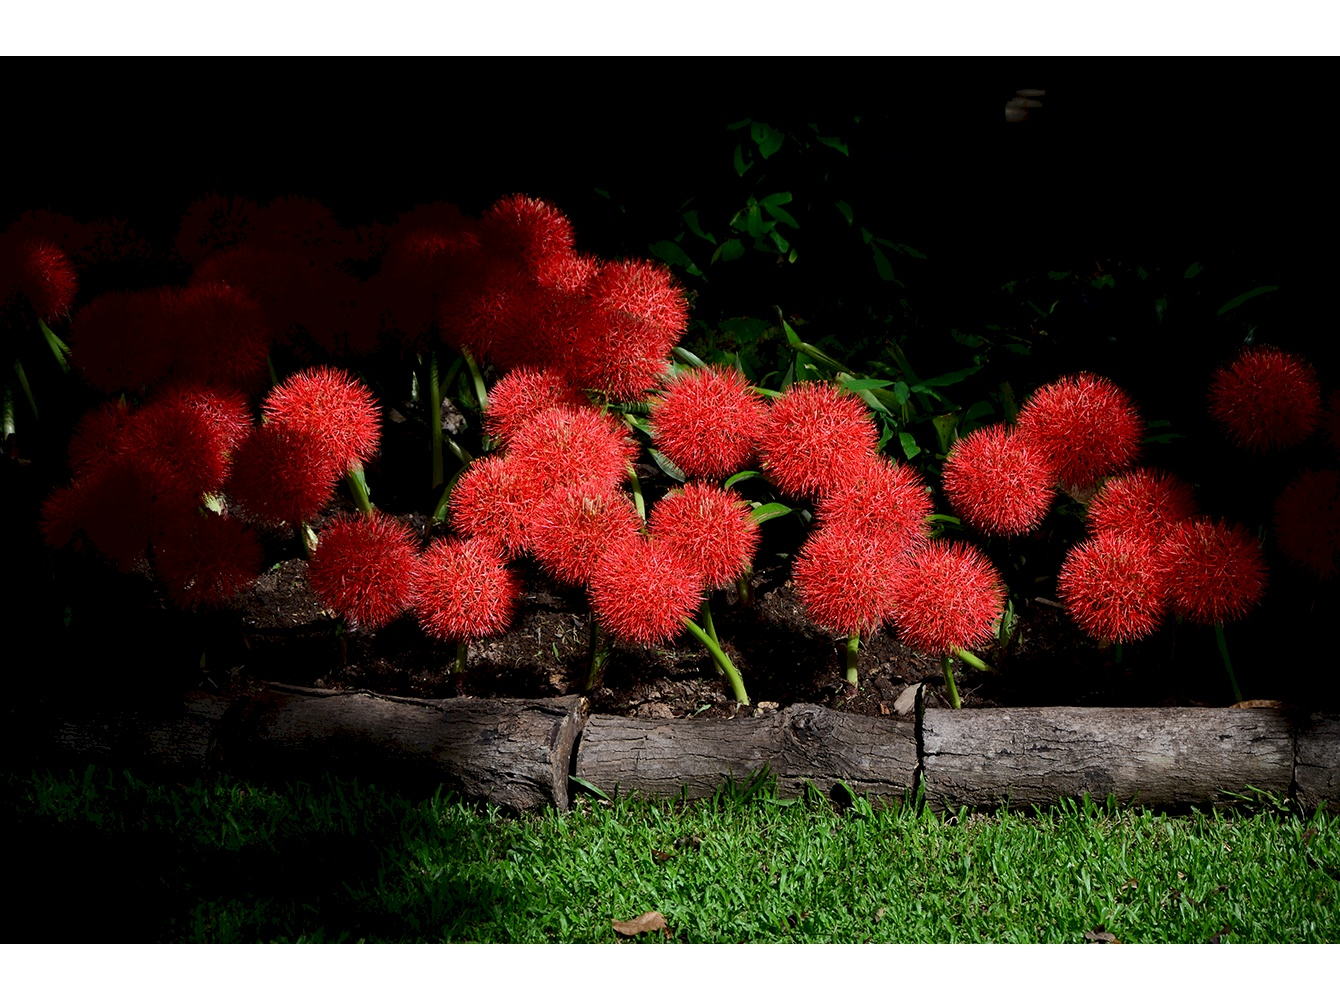 Red blossom in shadow image